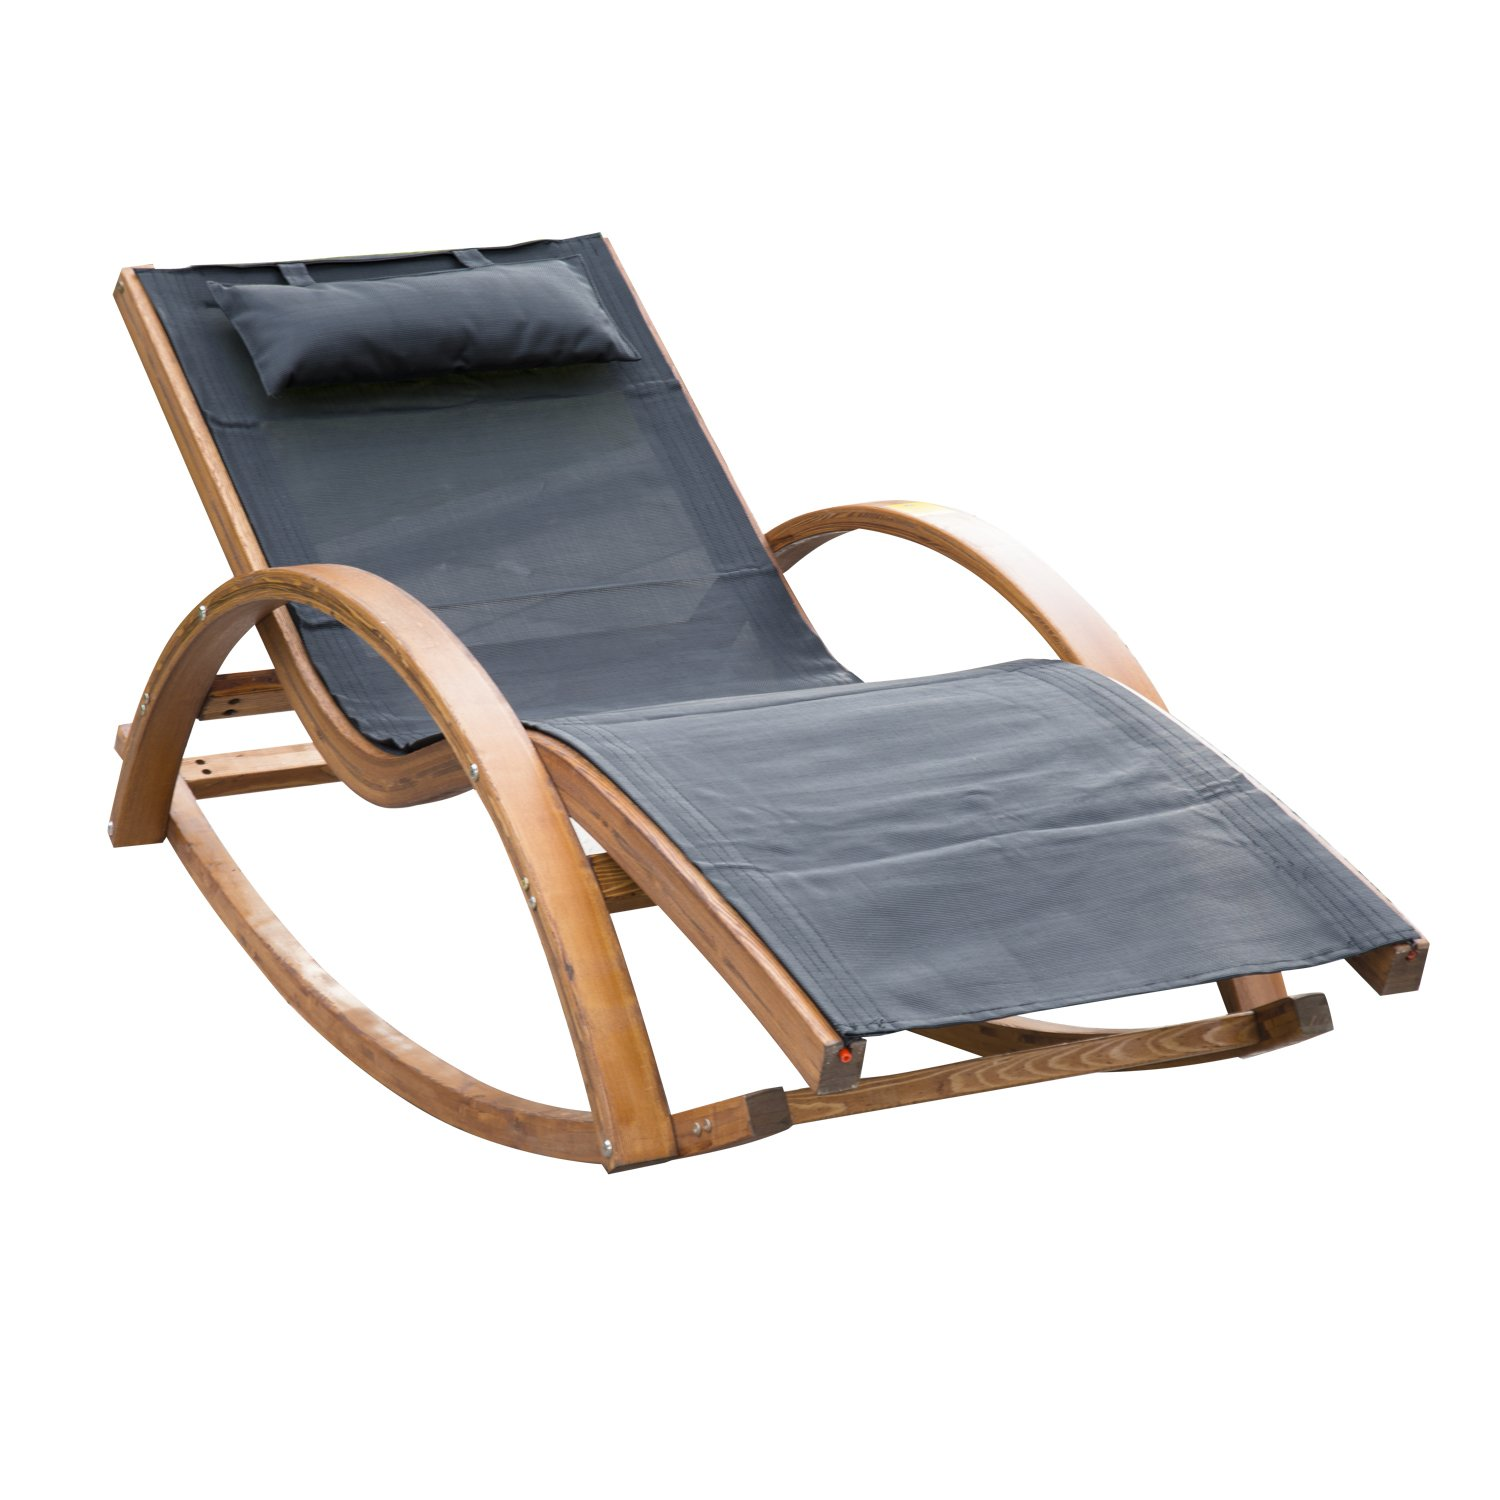 Outsunny Outdoor Garden Patio Pool Rocking Chair Sun Lounger Bed